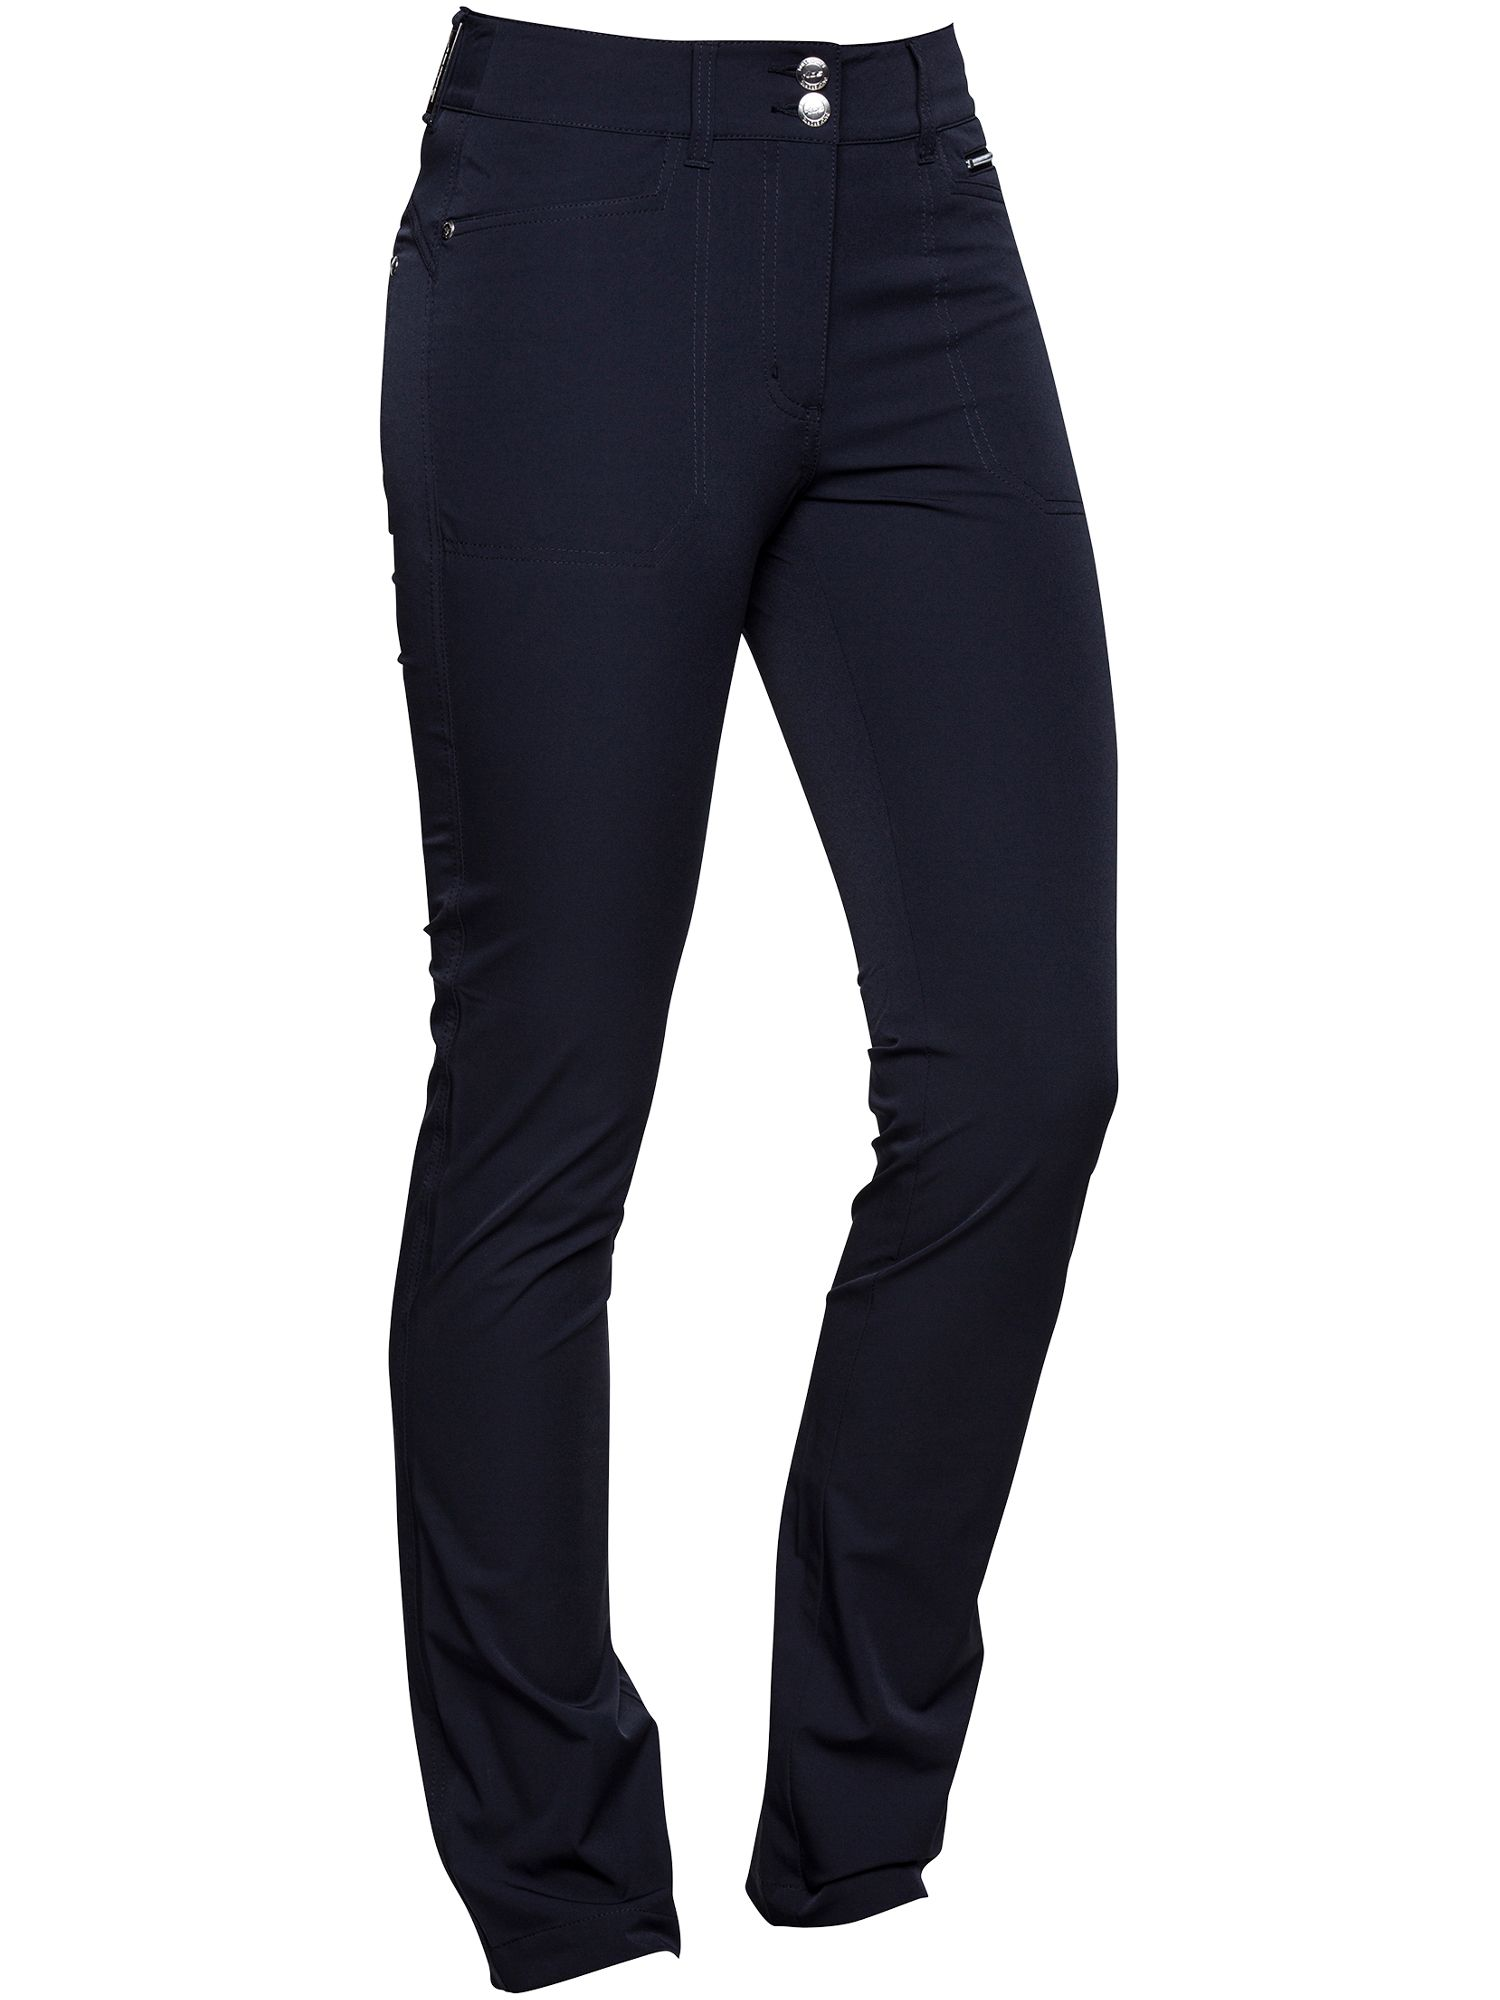 Daily Sports Daily Sports Miracle trousers, Navy